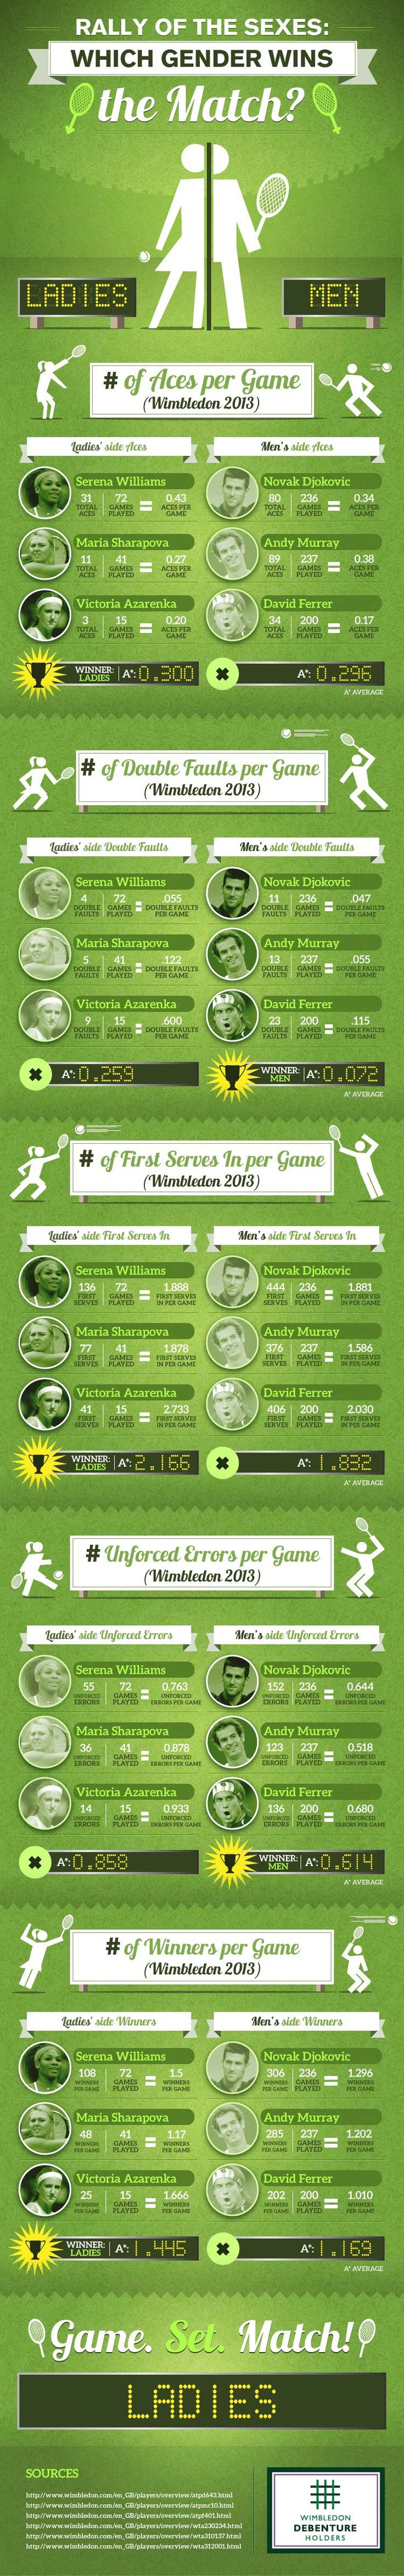 #INFOgraphic > Wimbledon 2013 Scores: Discover which gender dominates the tennis courts based on scores and records from Wimbledon 2013. Do you think that women can't do it like men? See this infographic first.  > http://infographicsmania.com/wimbledon-2013-scores/?utm_source=Pinterest&utm_medium=INFOGRAPHICSMANIA&utm_campaign=SNAP